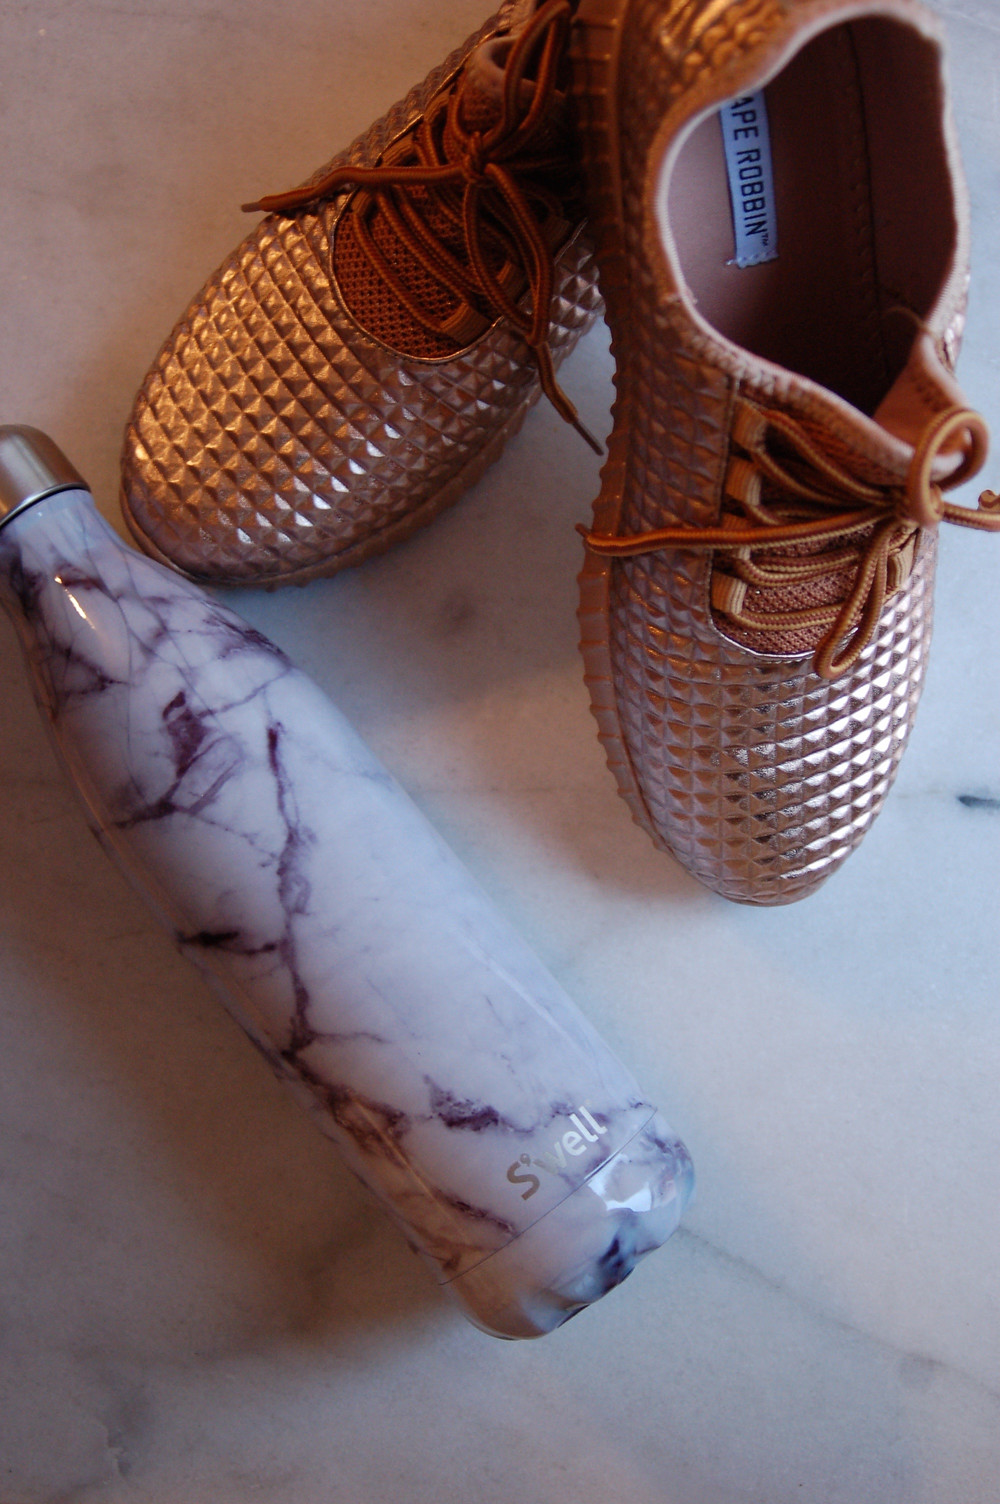 Grace and Merriment - Git Fit Get Healthy - Rose Gold Shoes - Marble Swell Bottle